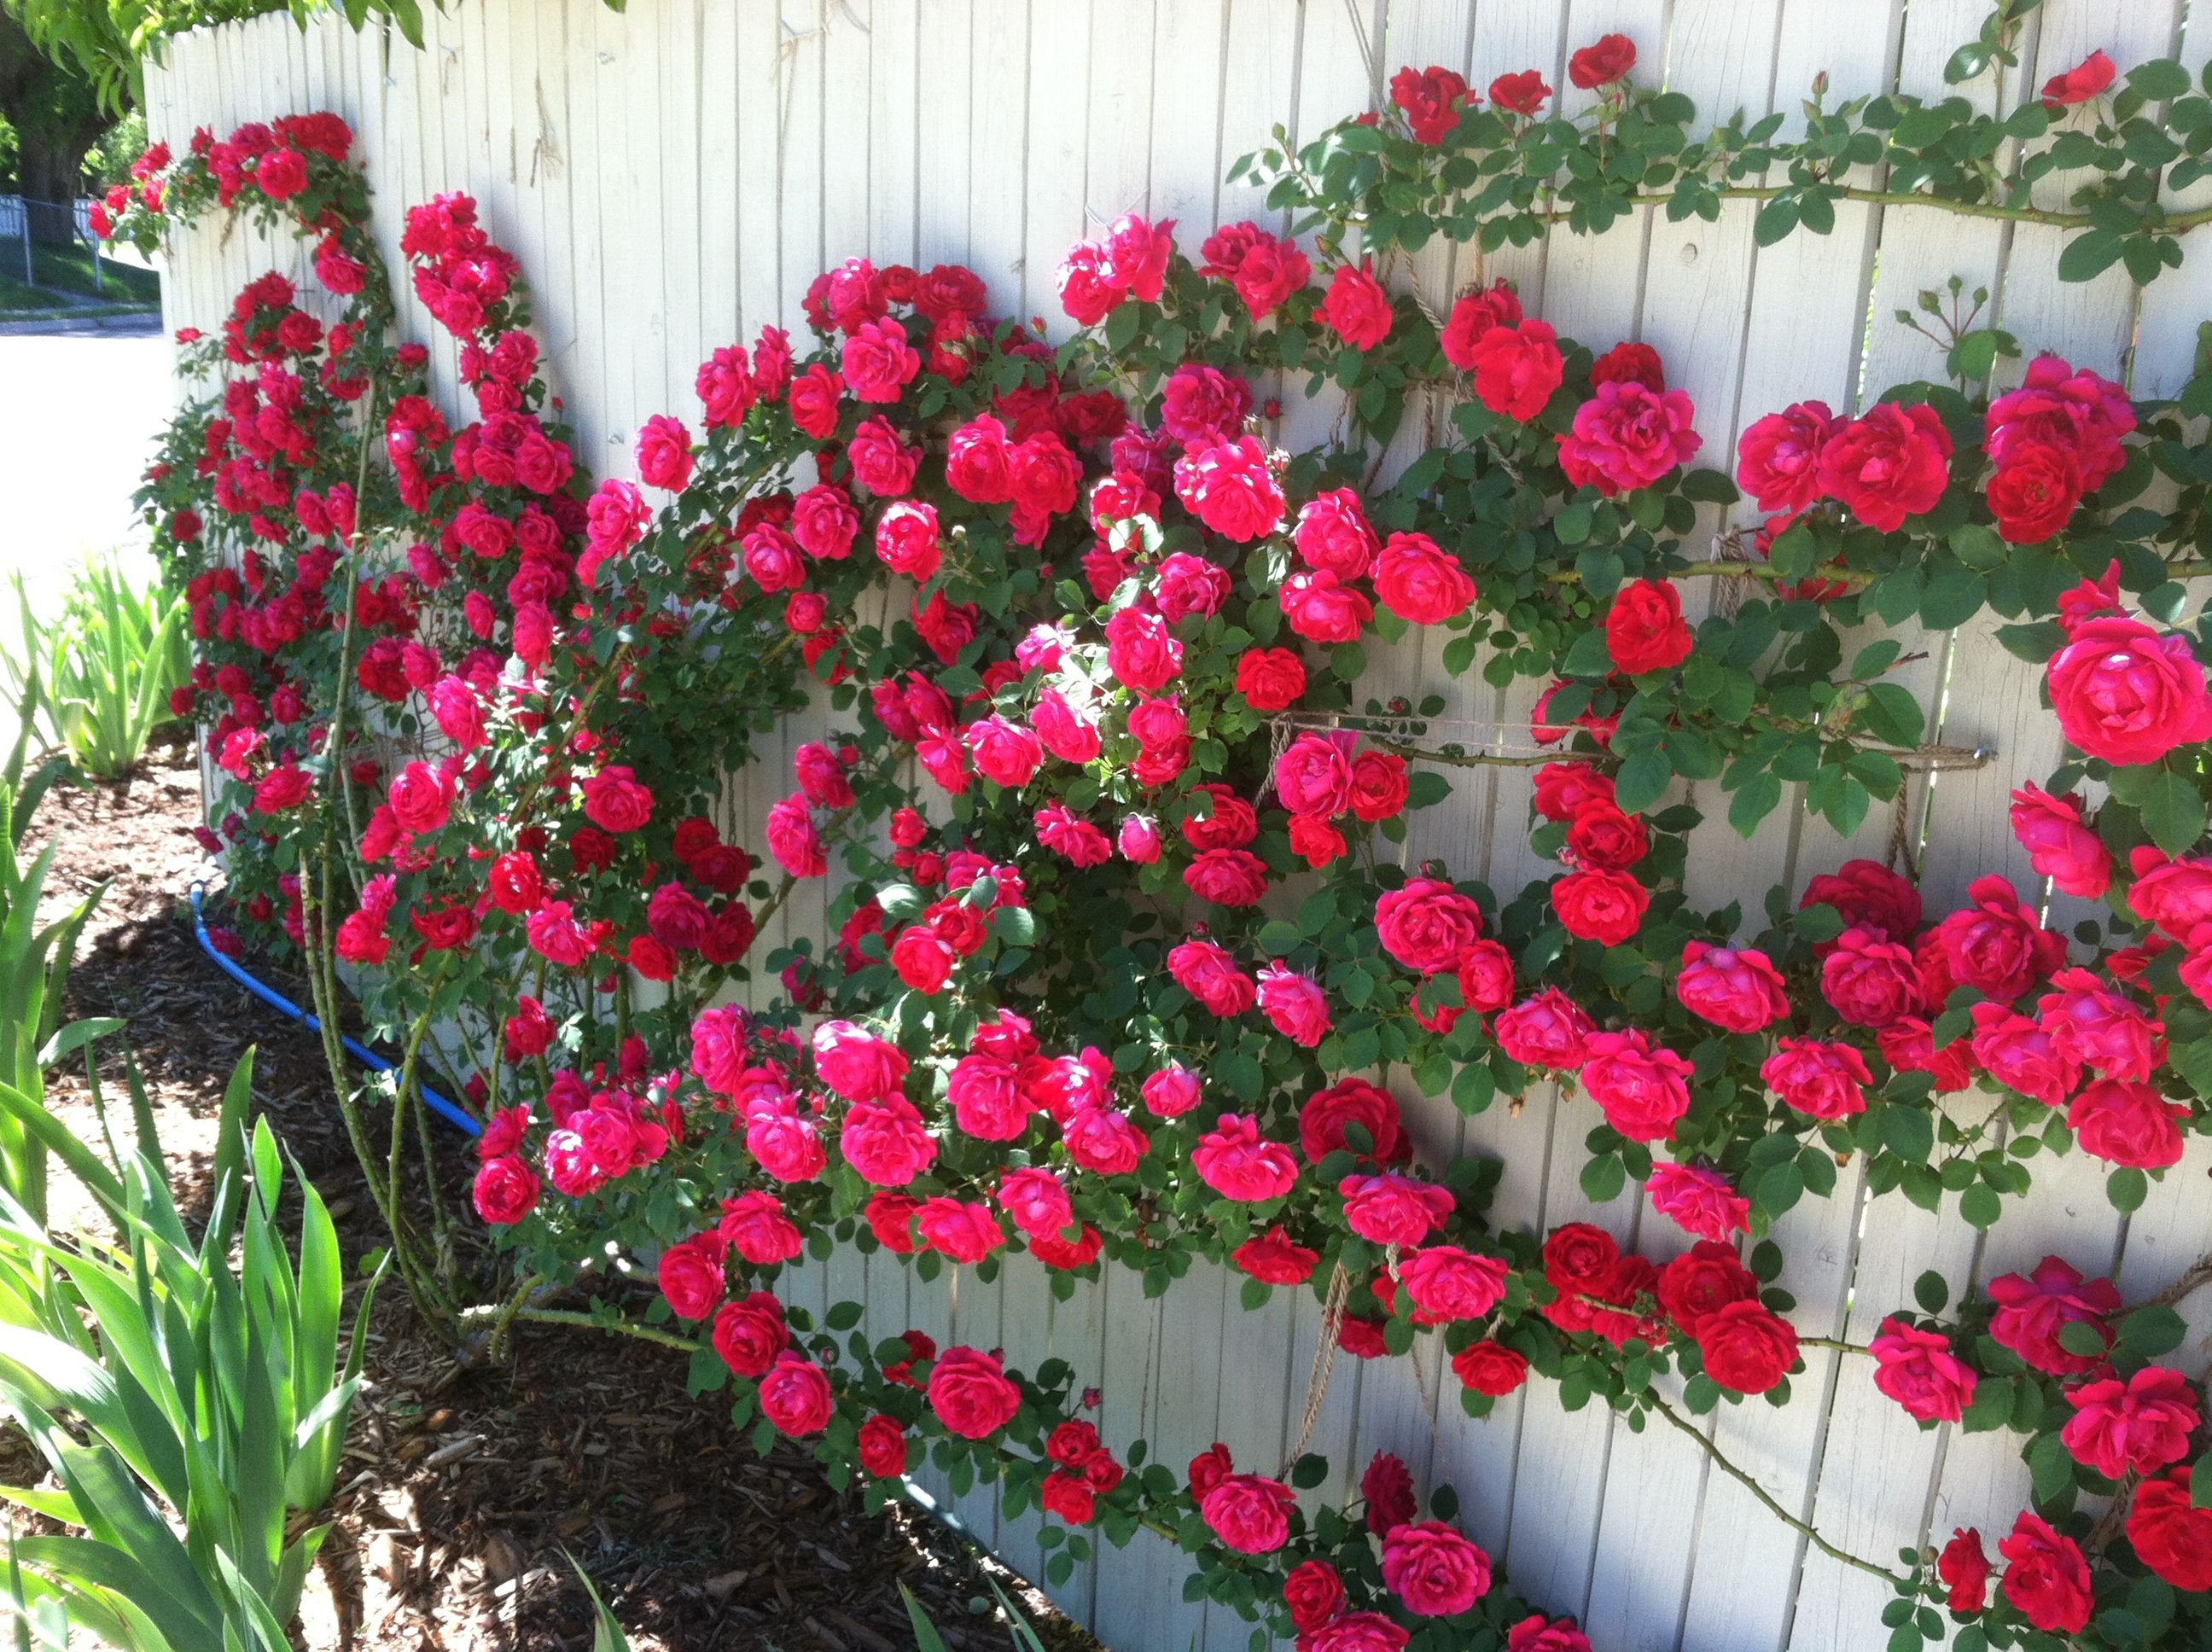 Best climbing roses img 5316 300x224 blaze climbing rose for Climbing flowering plants for fences